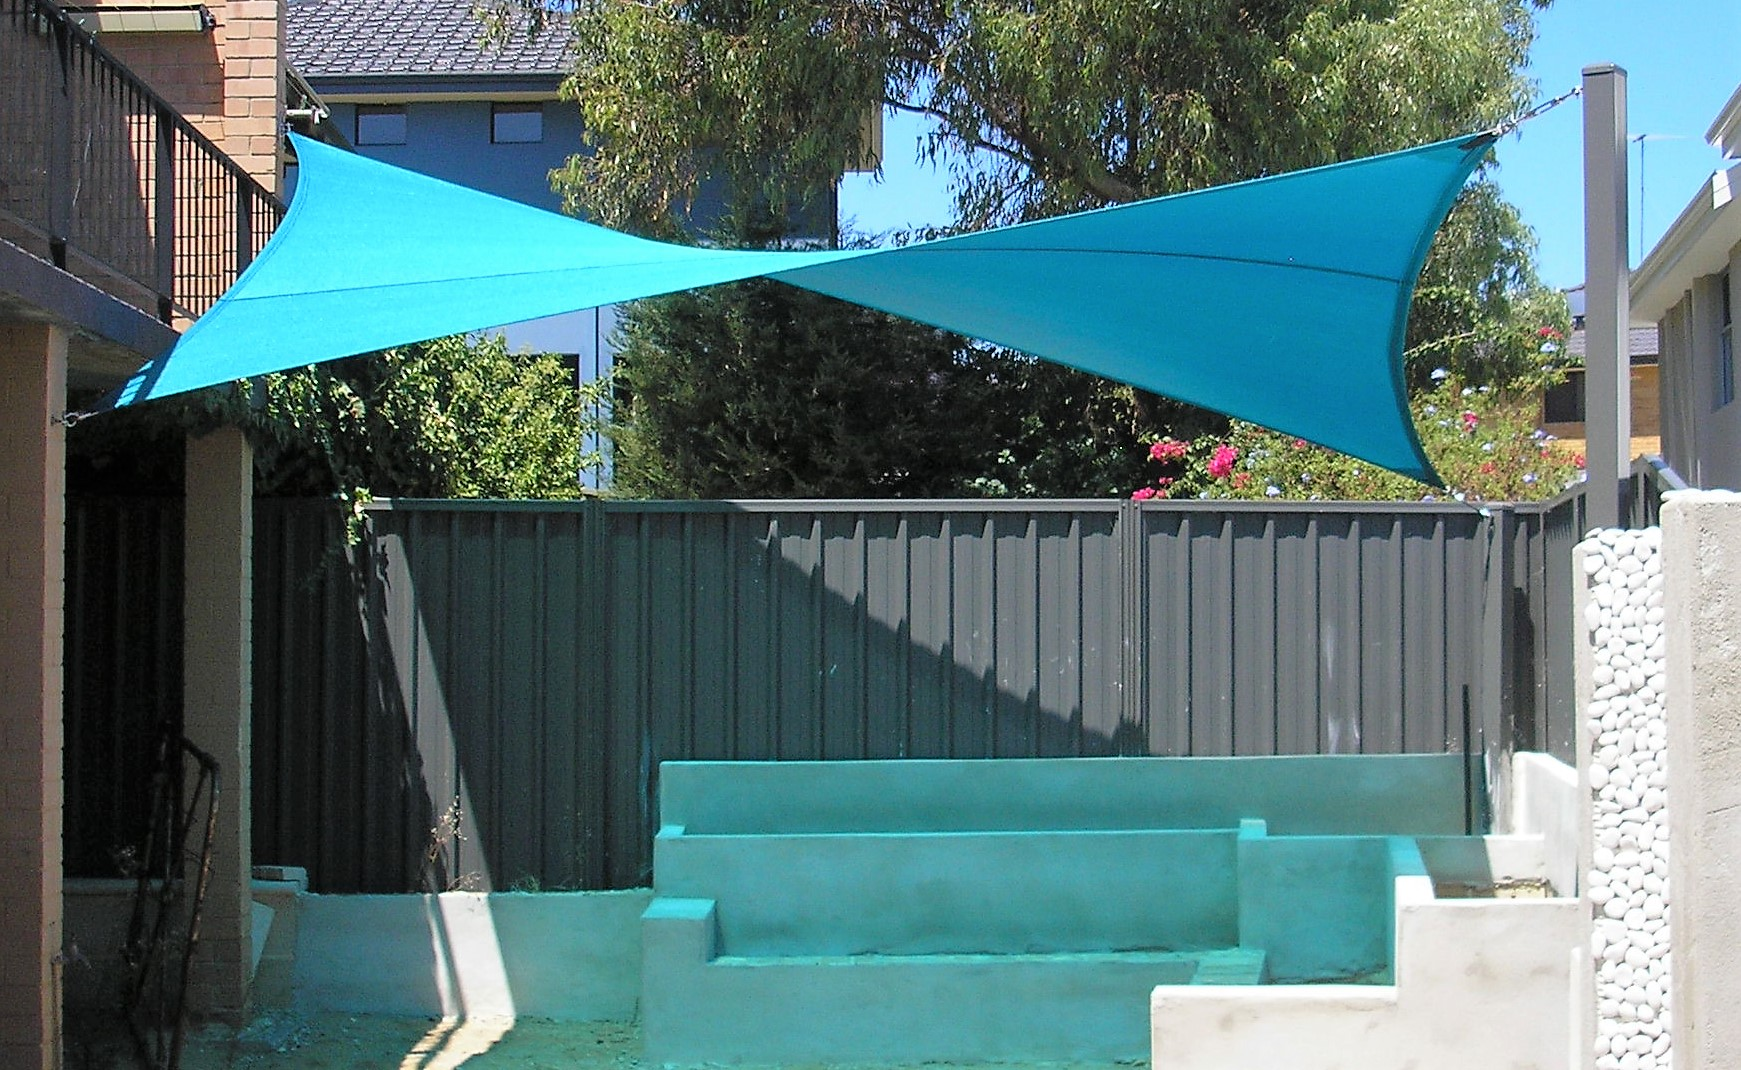 Hypar sail to provide shade to a newly renovated outdoor area